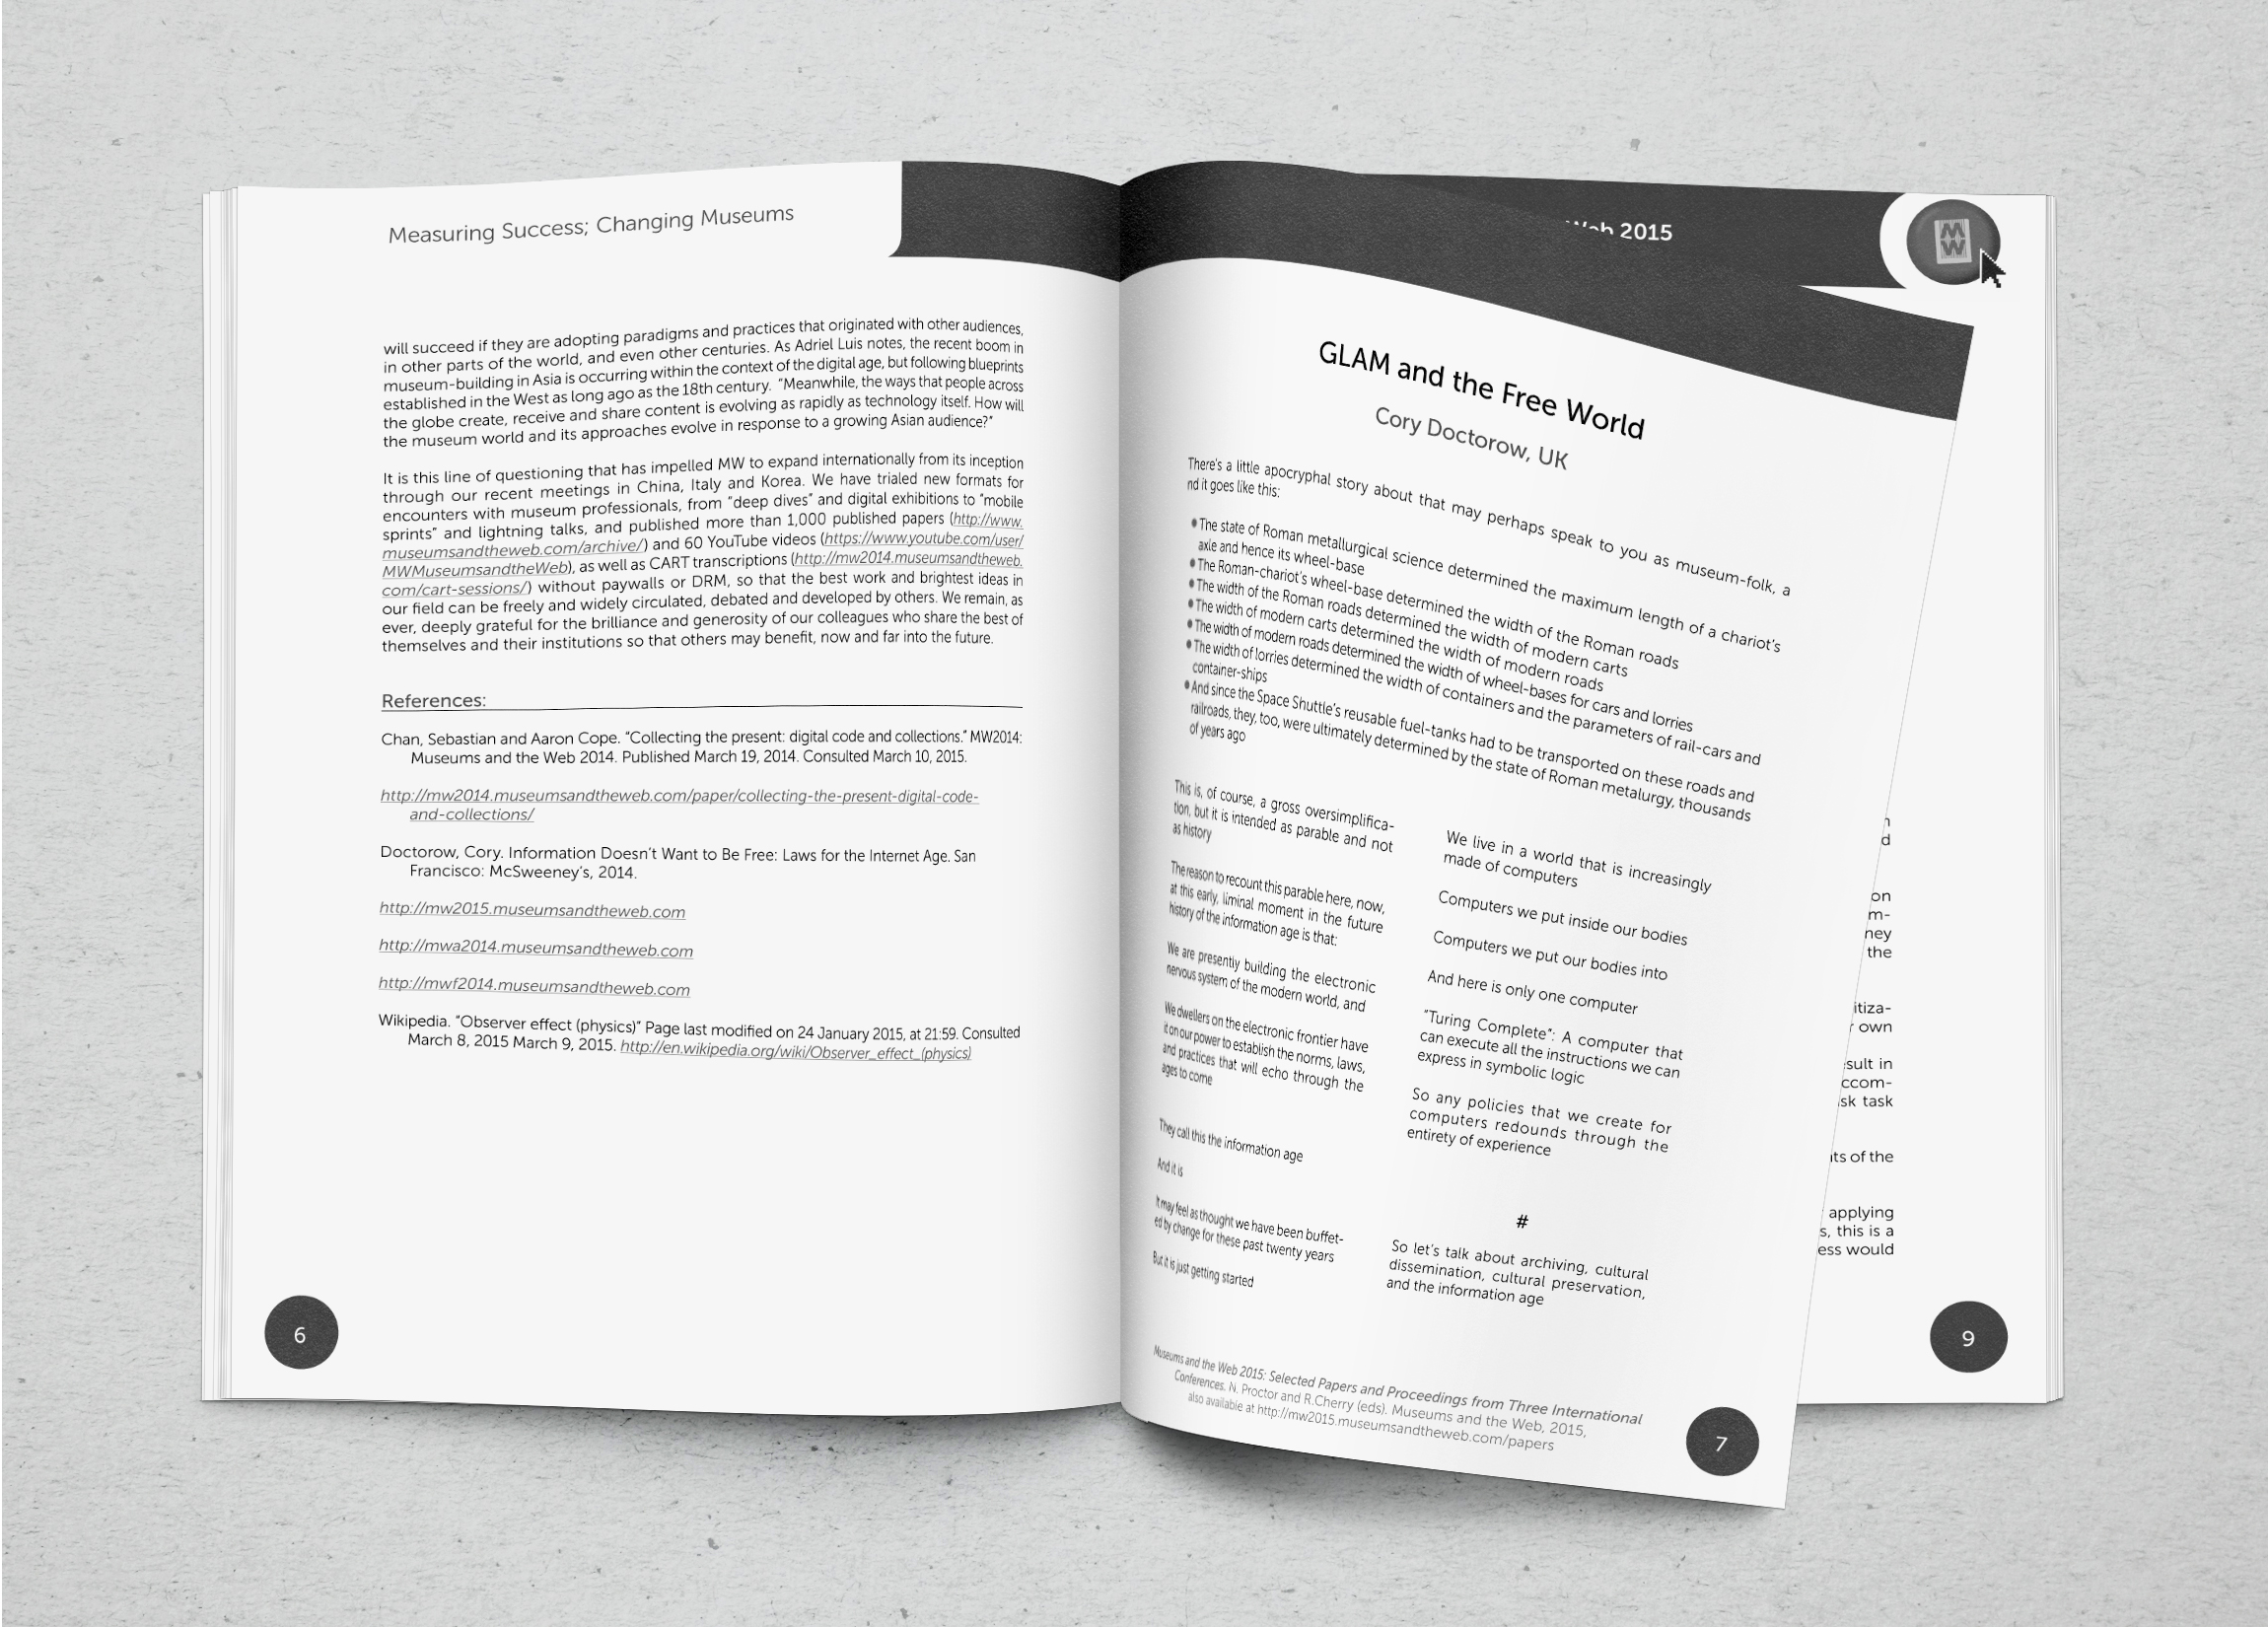 interior book design journal articles print booklet conference collateral branding 300+ pages printed assorted papers museums and the web mw2105 conference Corey Doctorow typeset, page layout, design,